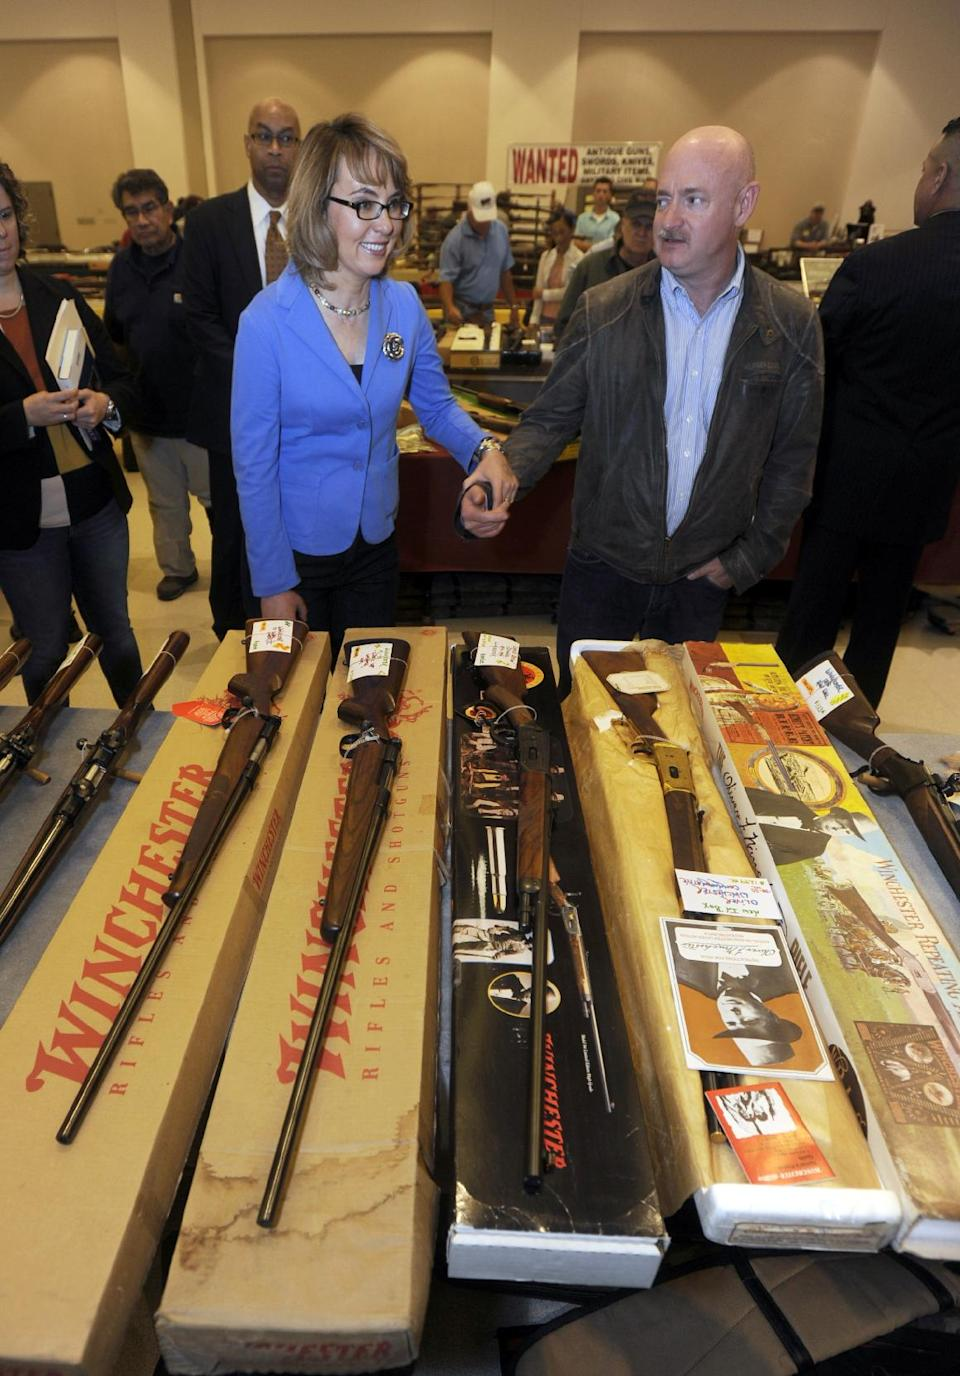 Former Arizona congresswoman Gabrielle Giffords, left, and her husband Mark Kelly tour the New EastCoast Arms Collectors Associates arms fair in Saratoga Springs, N.Y. on Sunday, Oct. 13, 2013. (AP Photo/Tim Roske, Pool)